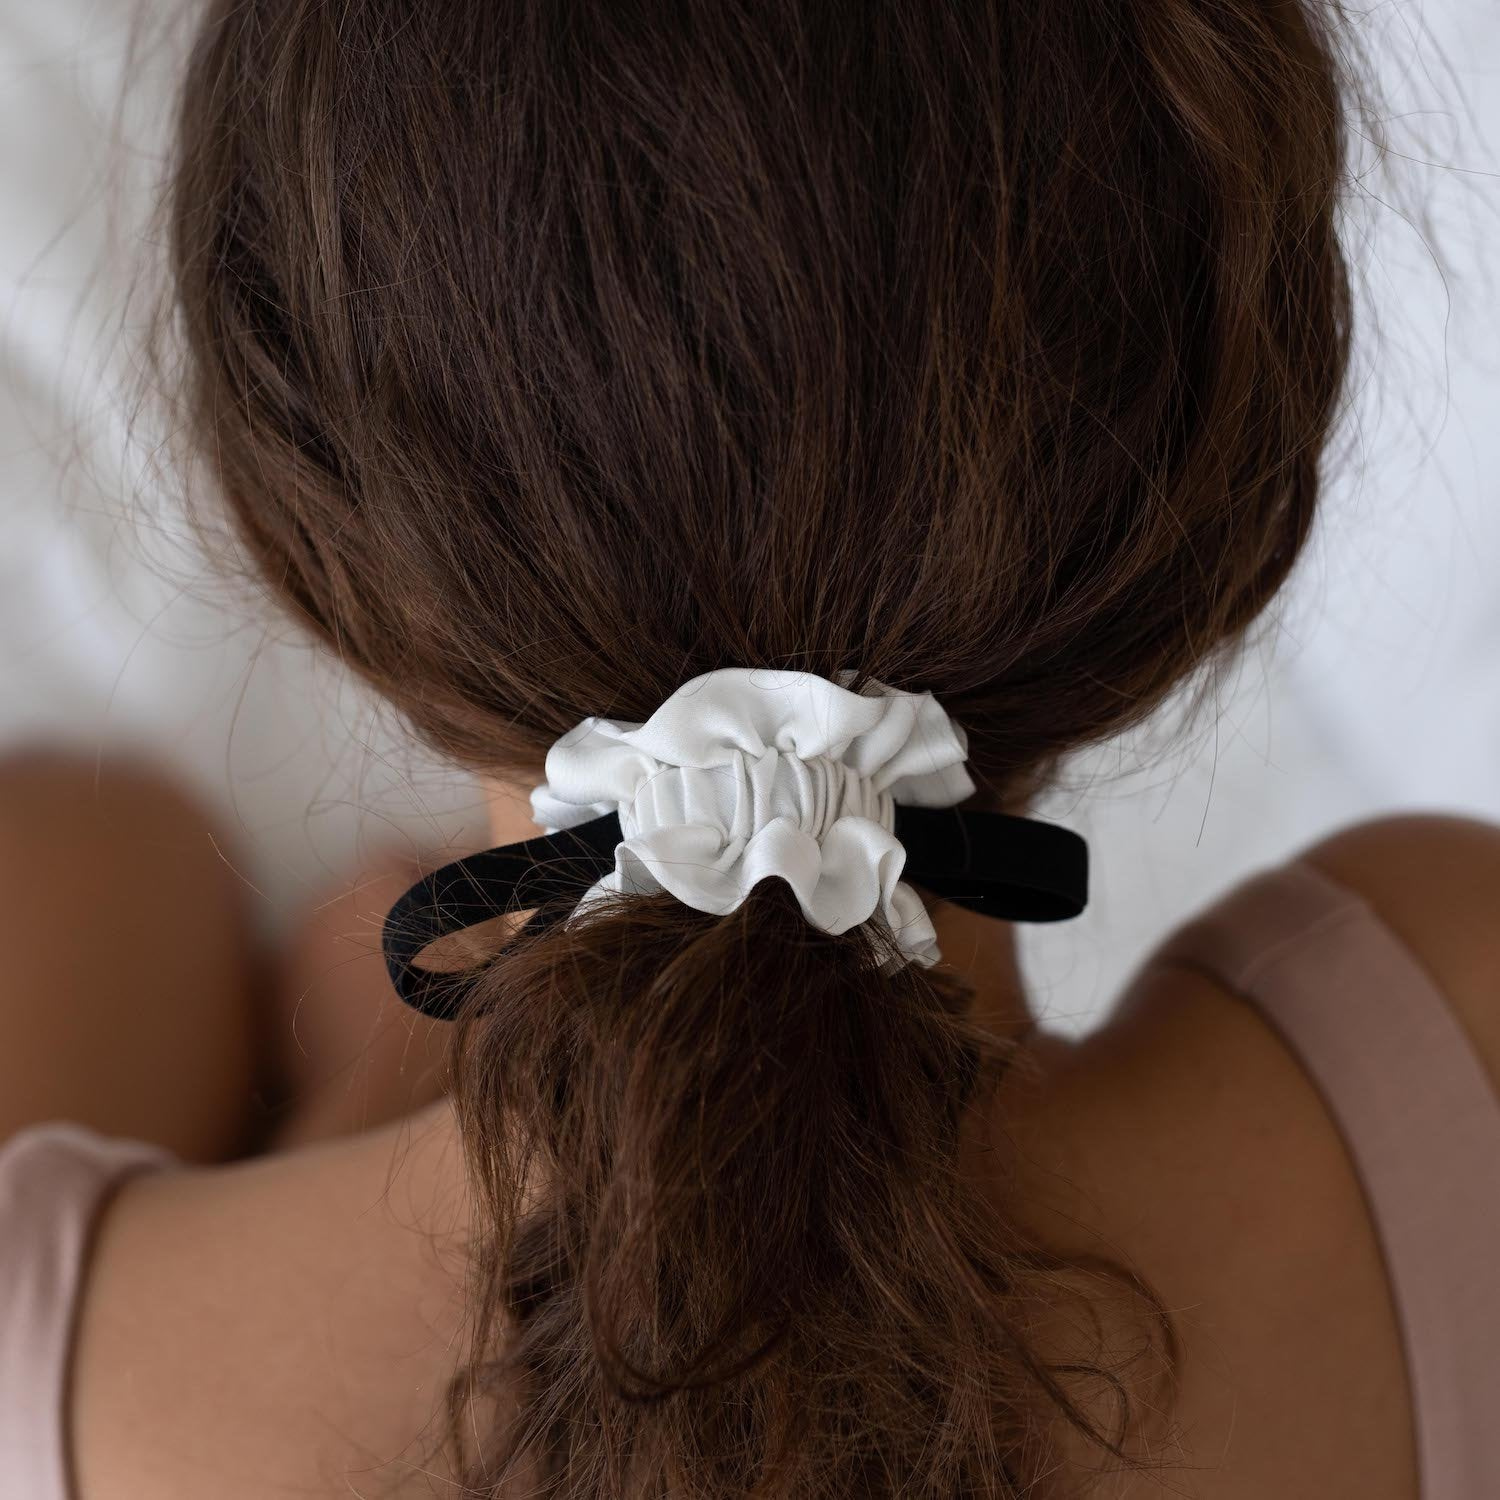 Lunya Sleepwear Washable Silk Scrunchie - #Starlight/Black